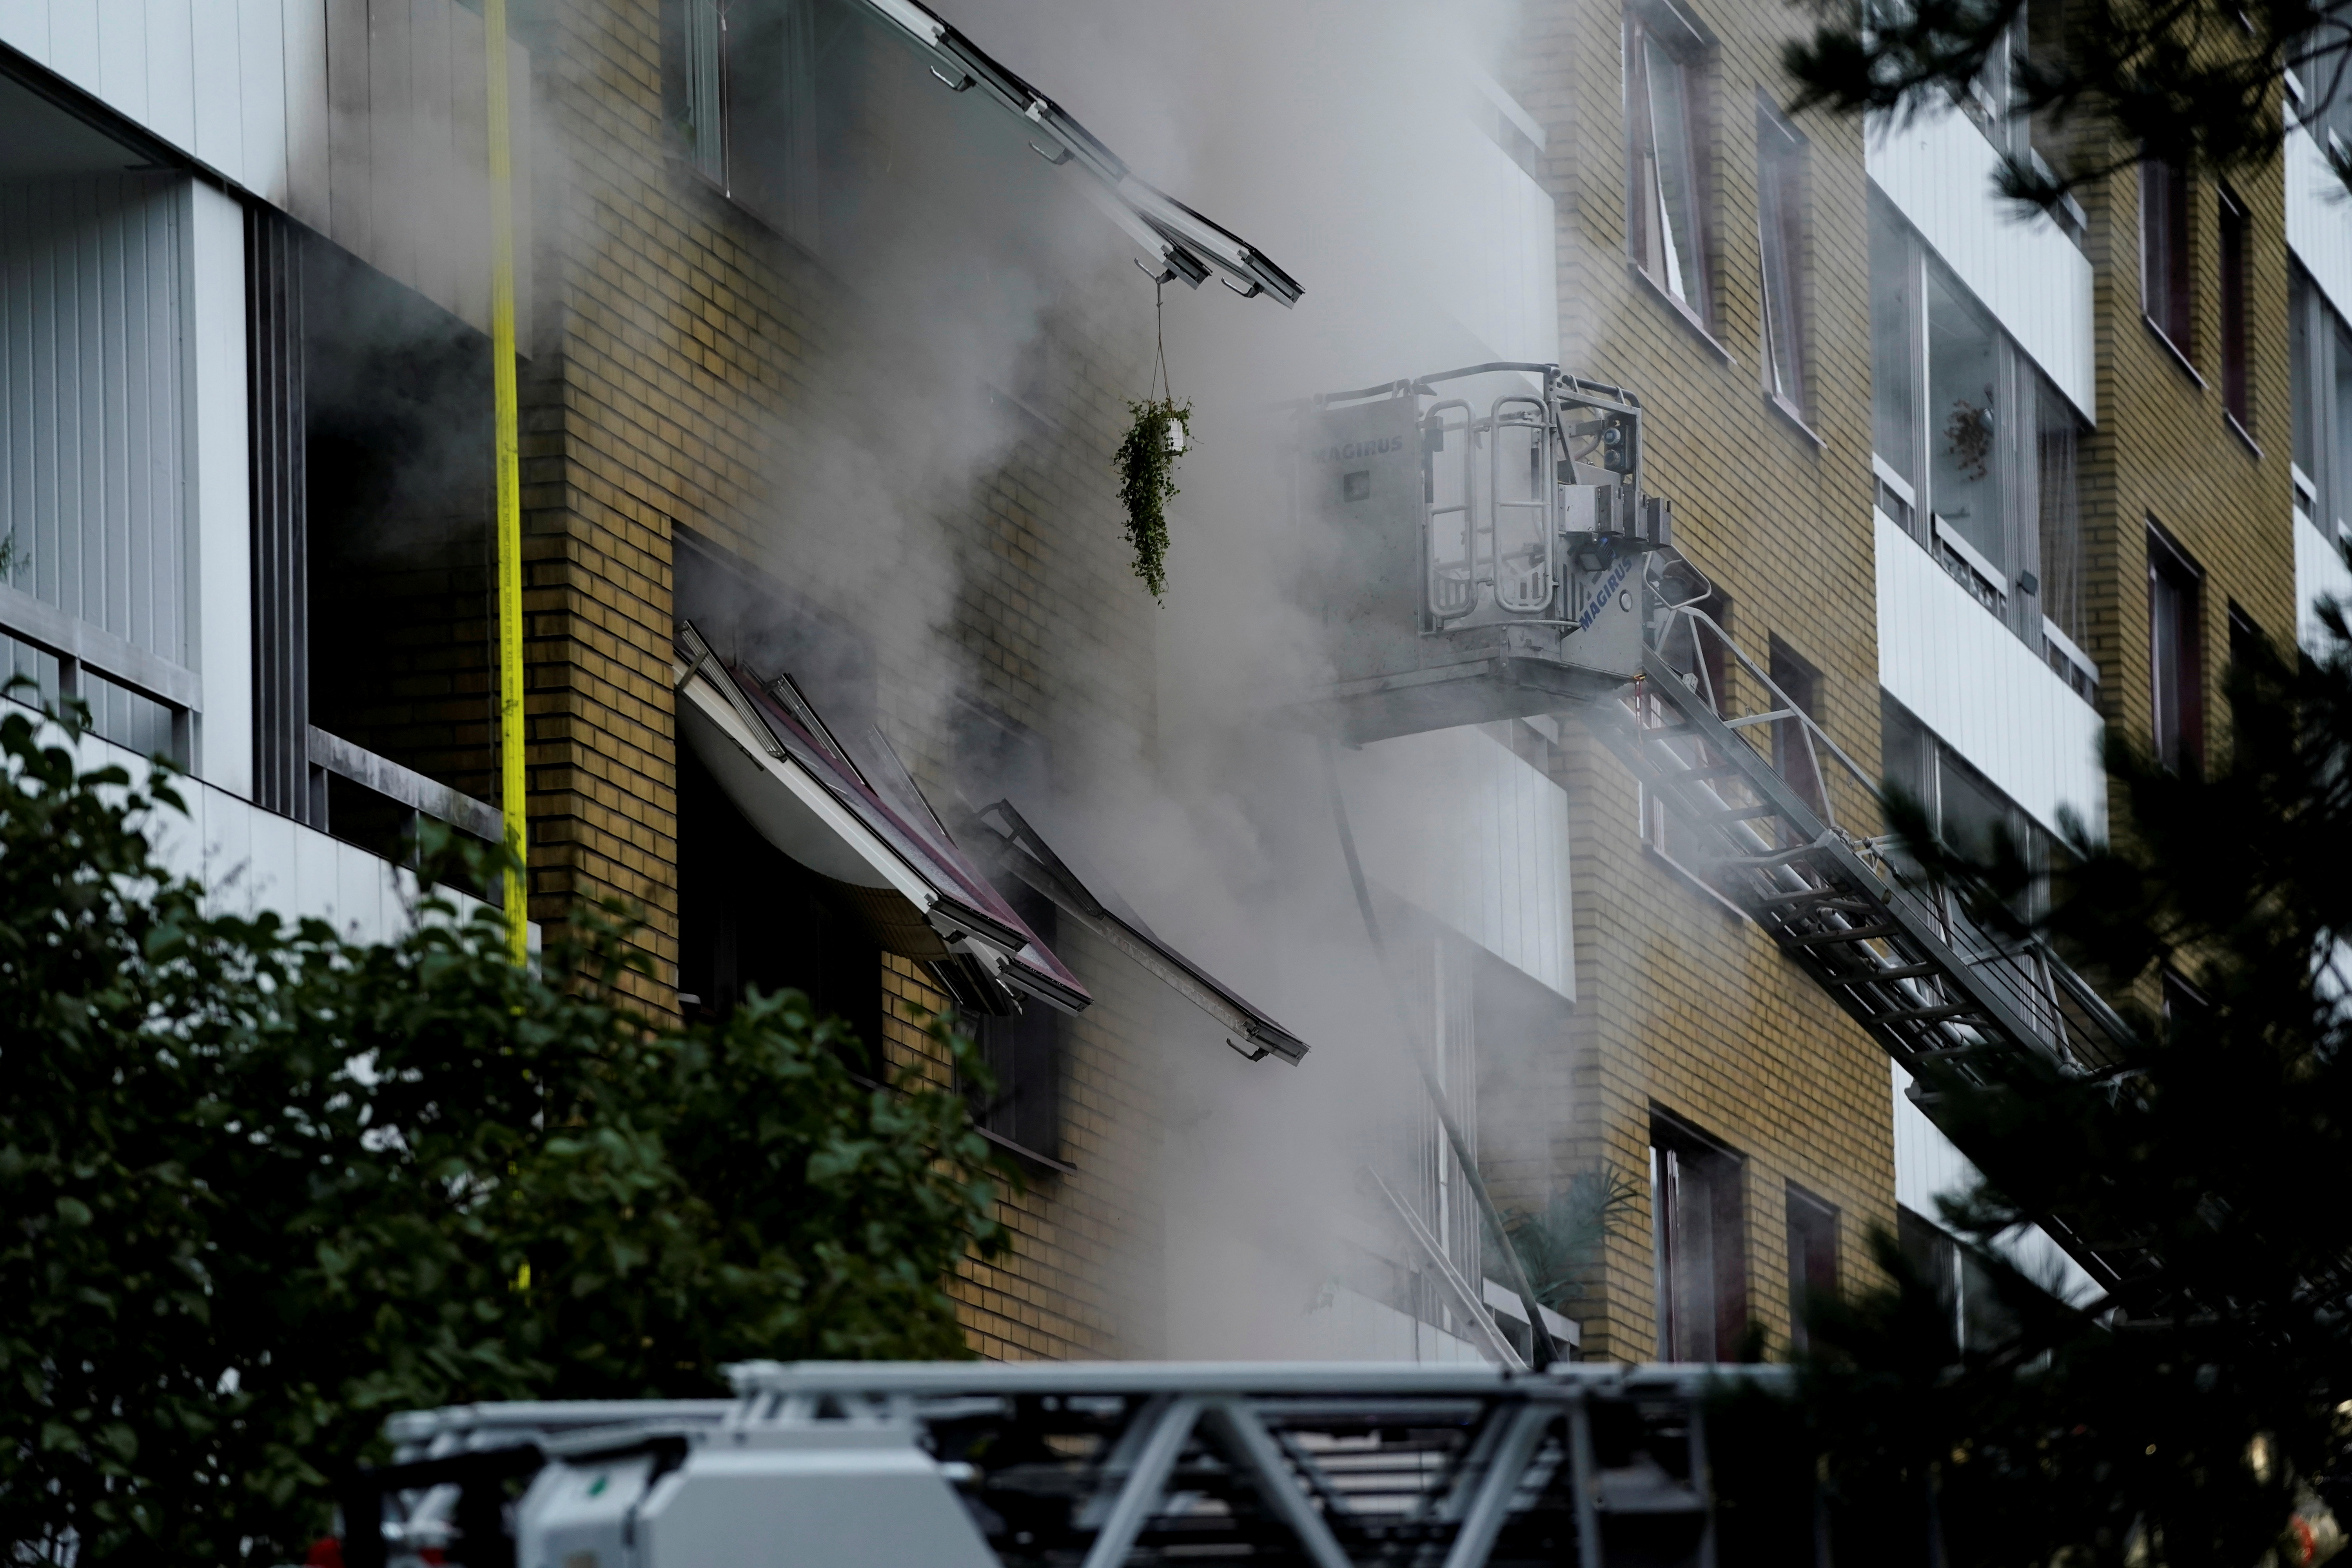 Smoke comes out of windows after an explosion hit an apartment building in Annedal, central Gothenburg, Sweden September 28, 2021. Larsson Rosvall / TT News Agency/via REUTERS